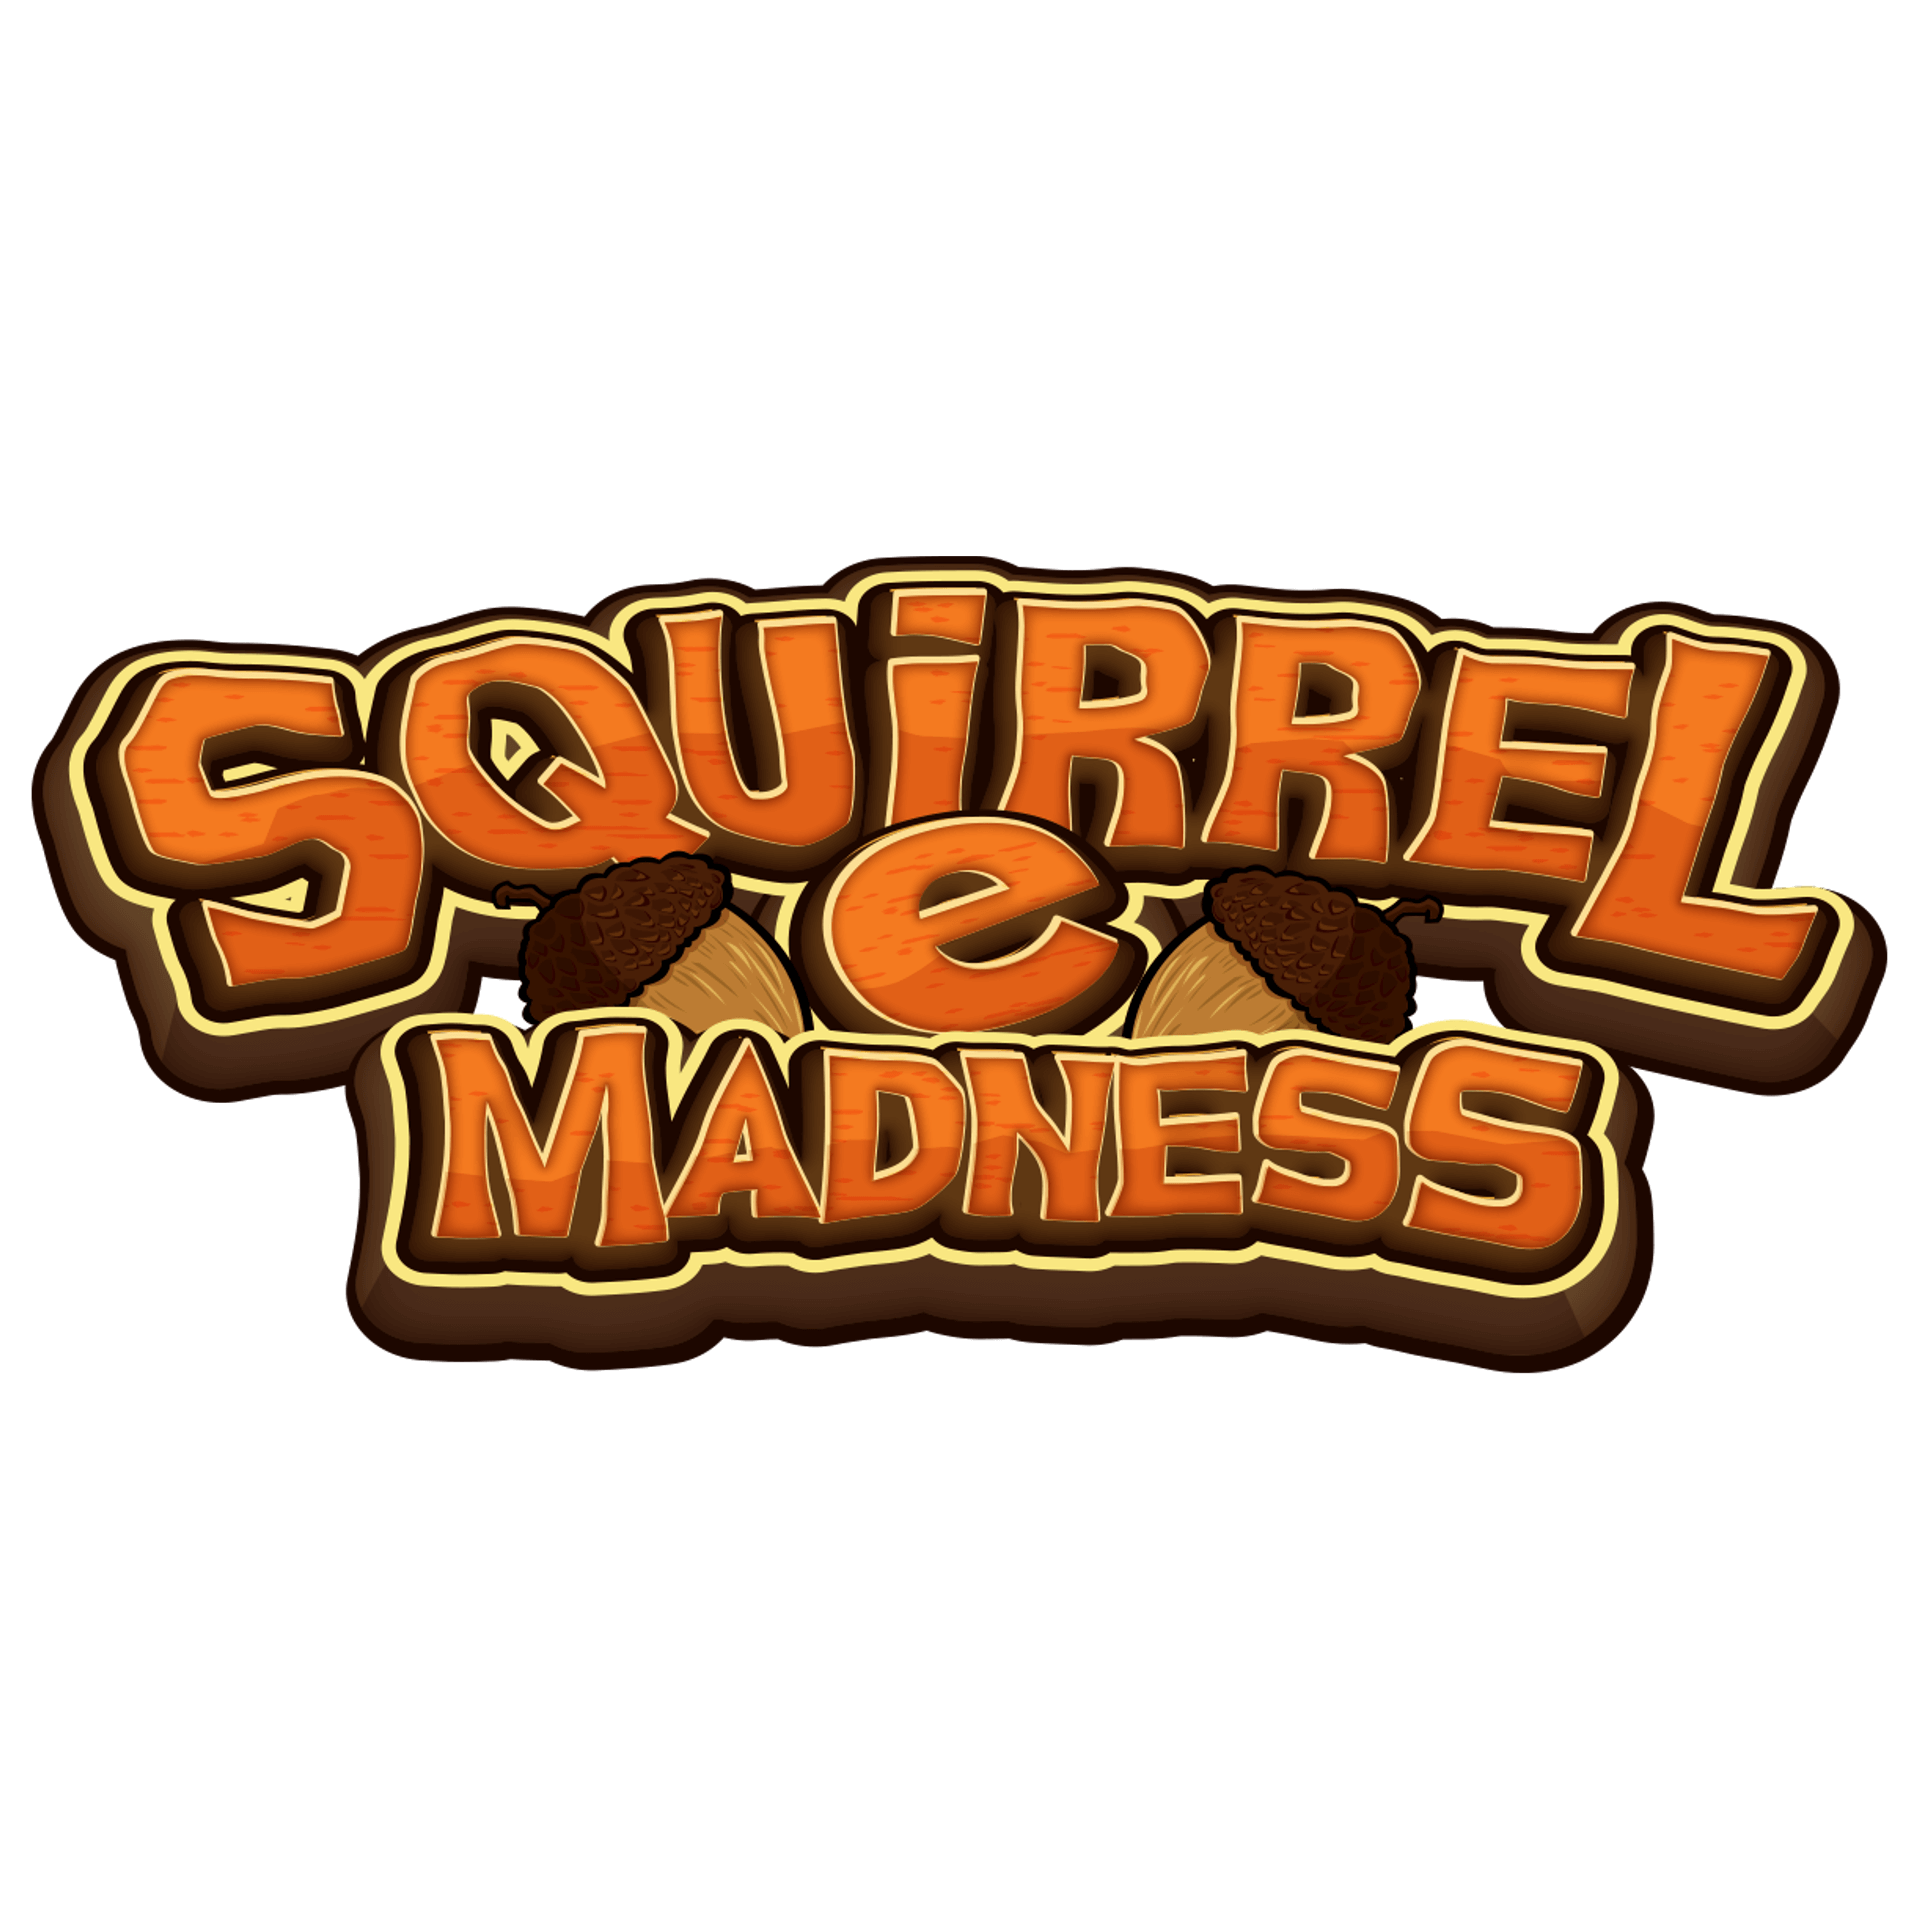 Squirrel-E-Madness